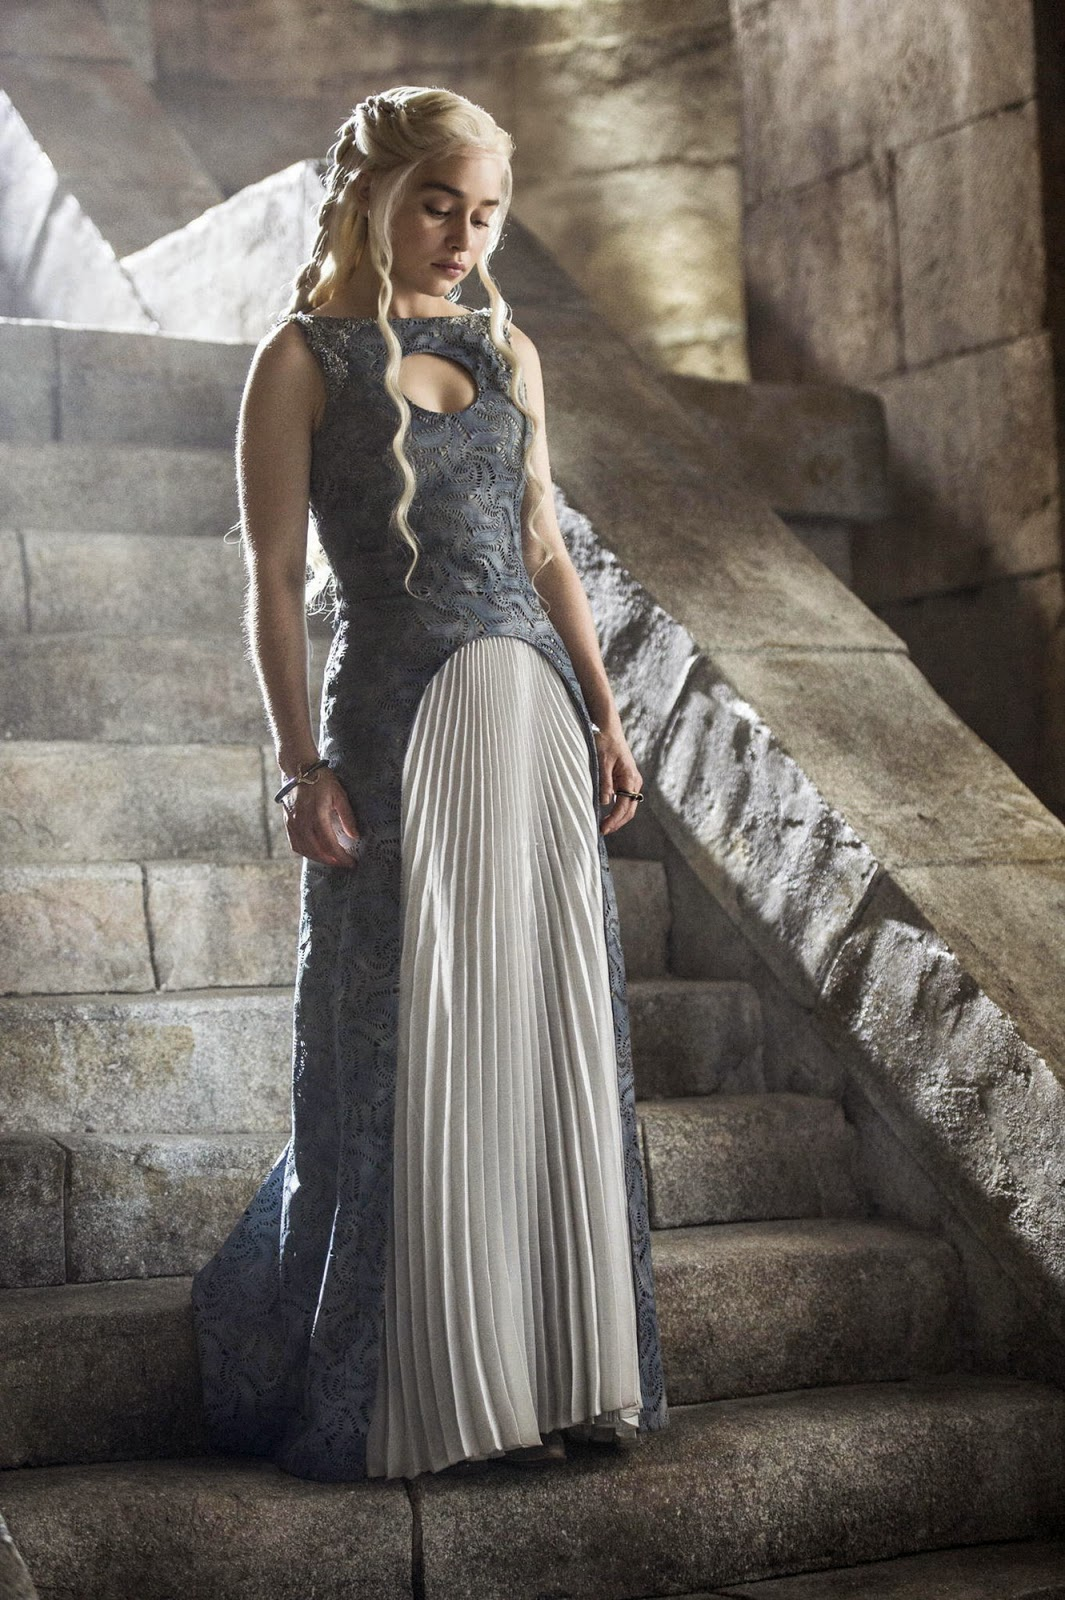 game-of-thrones_season4-tvspoileralert-daenerys